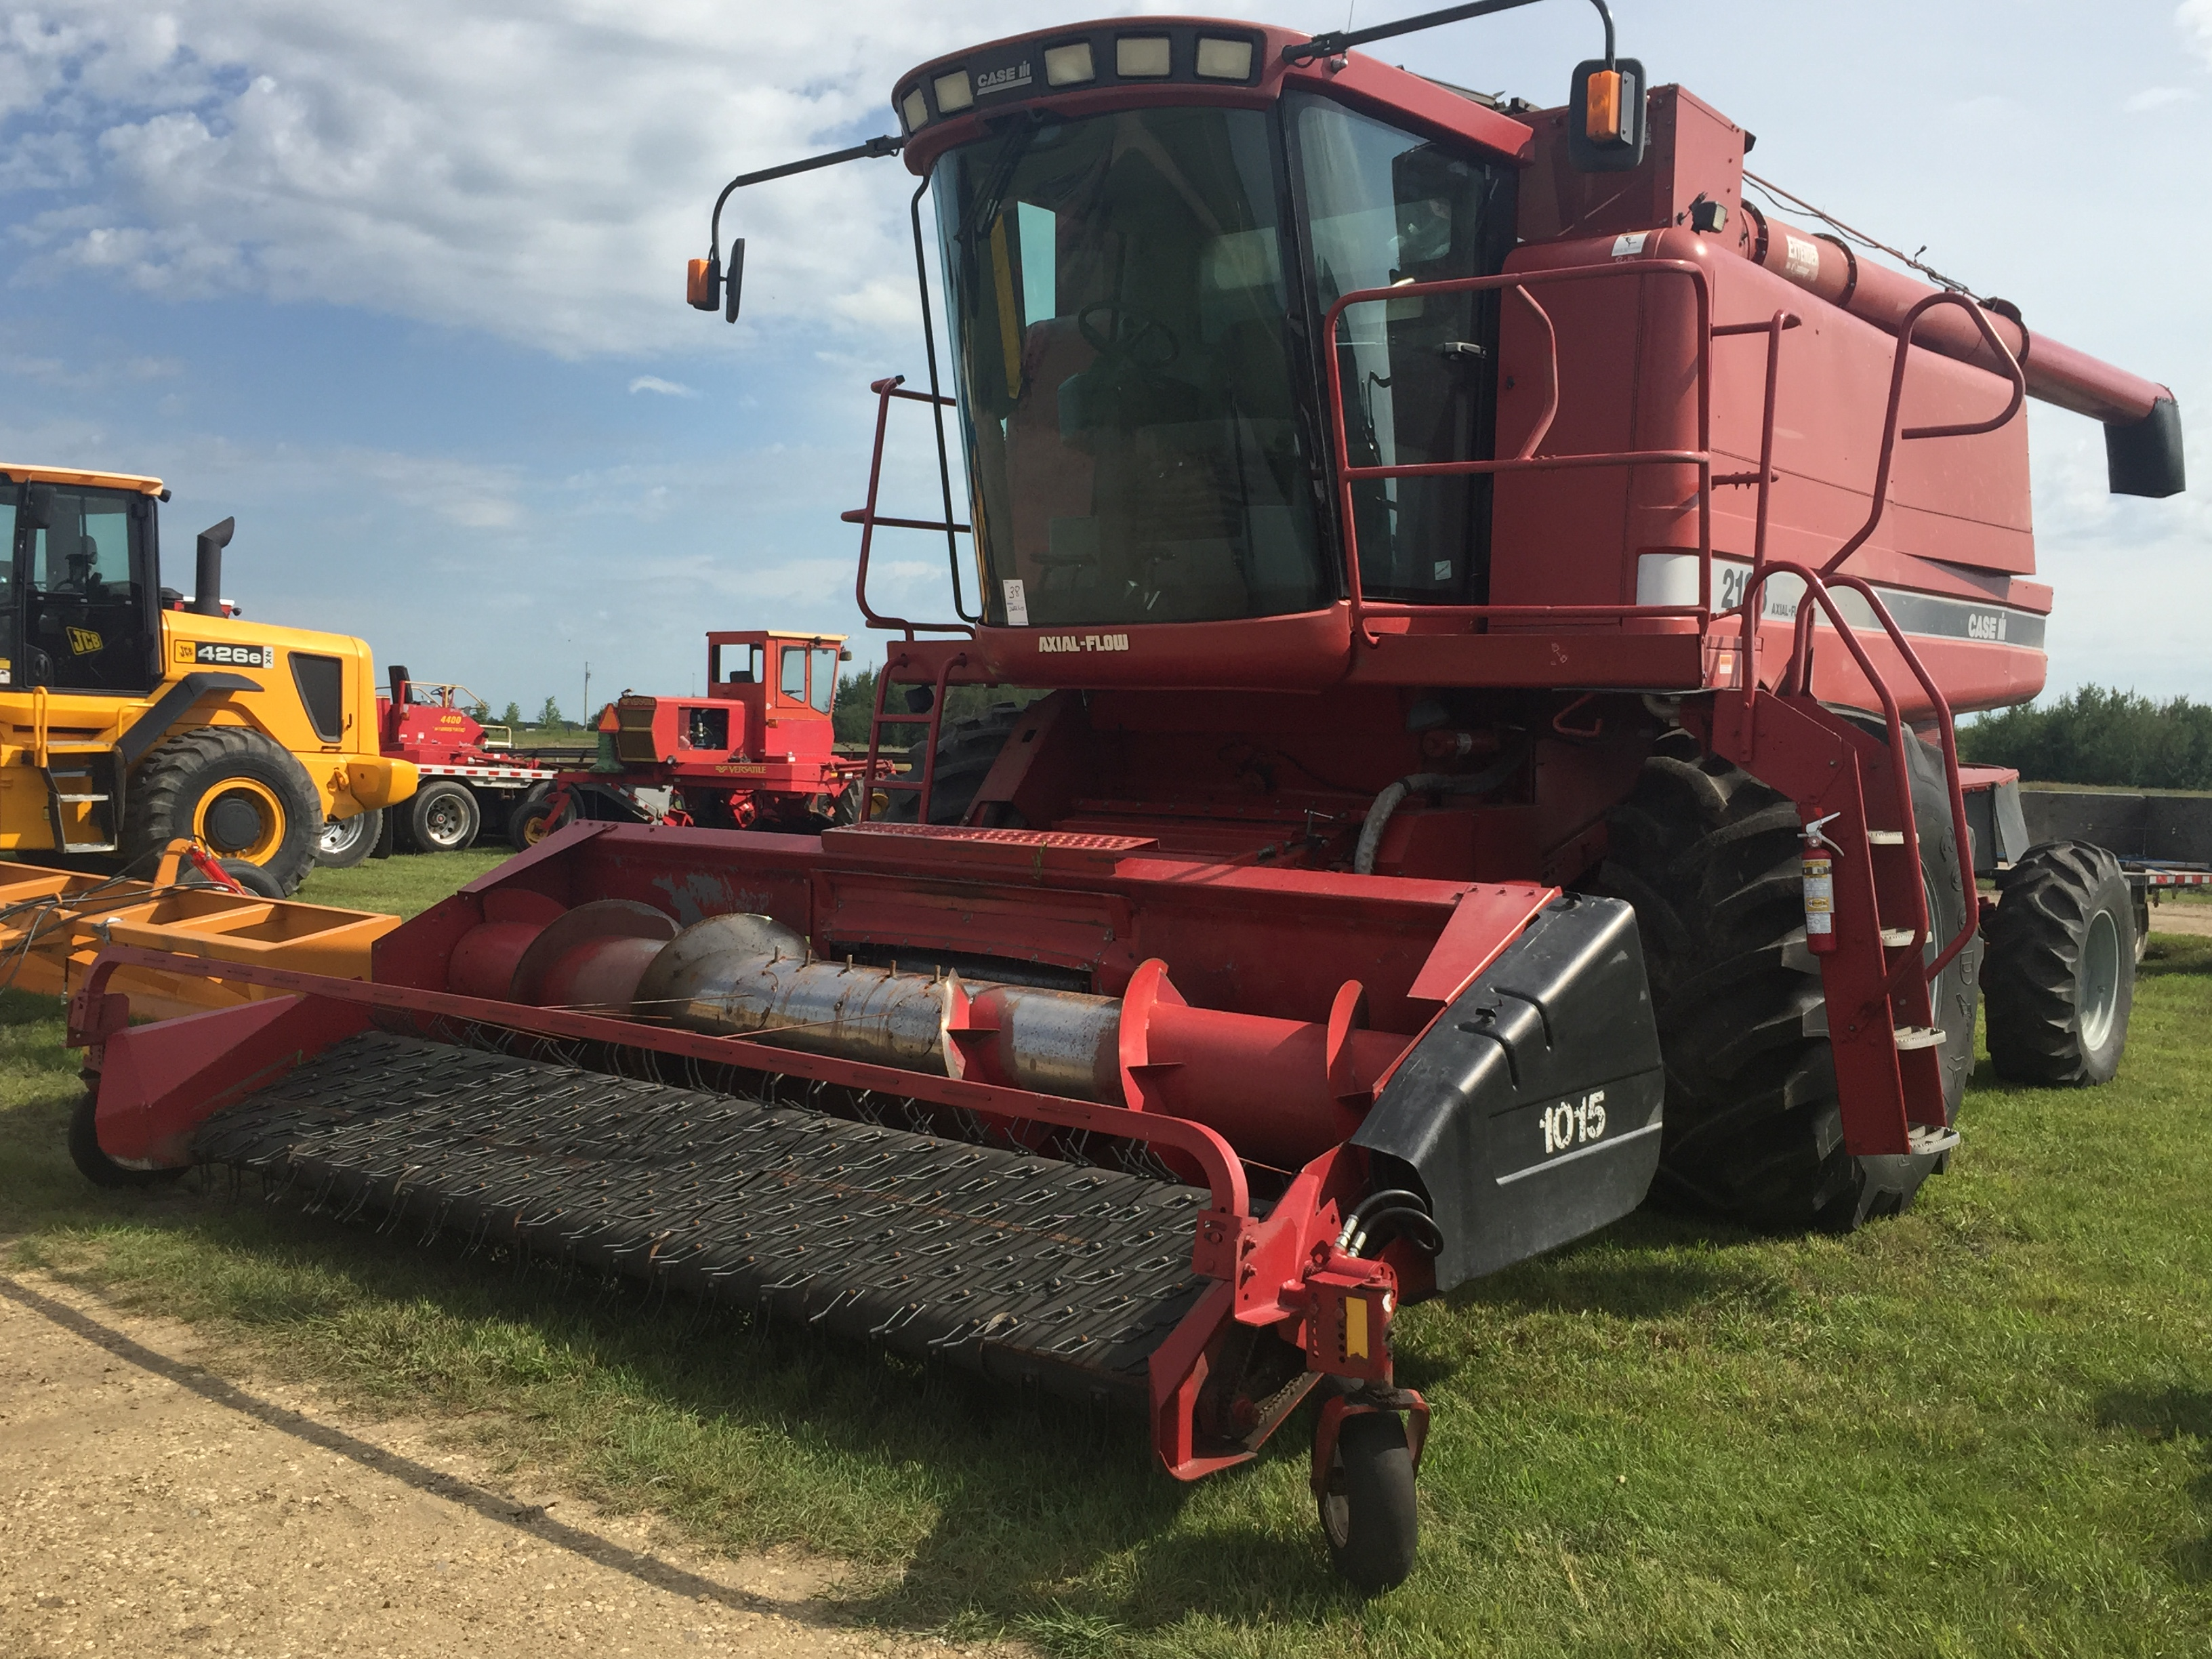 2188 combine - Lot 76 1990 Case Ih 2188 Axial Flow Combine 2682 Thrashing Hours